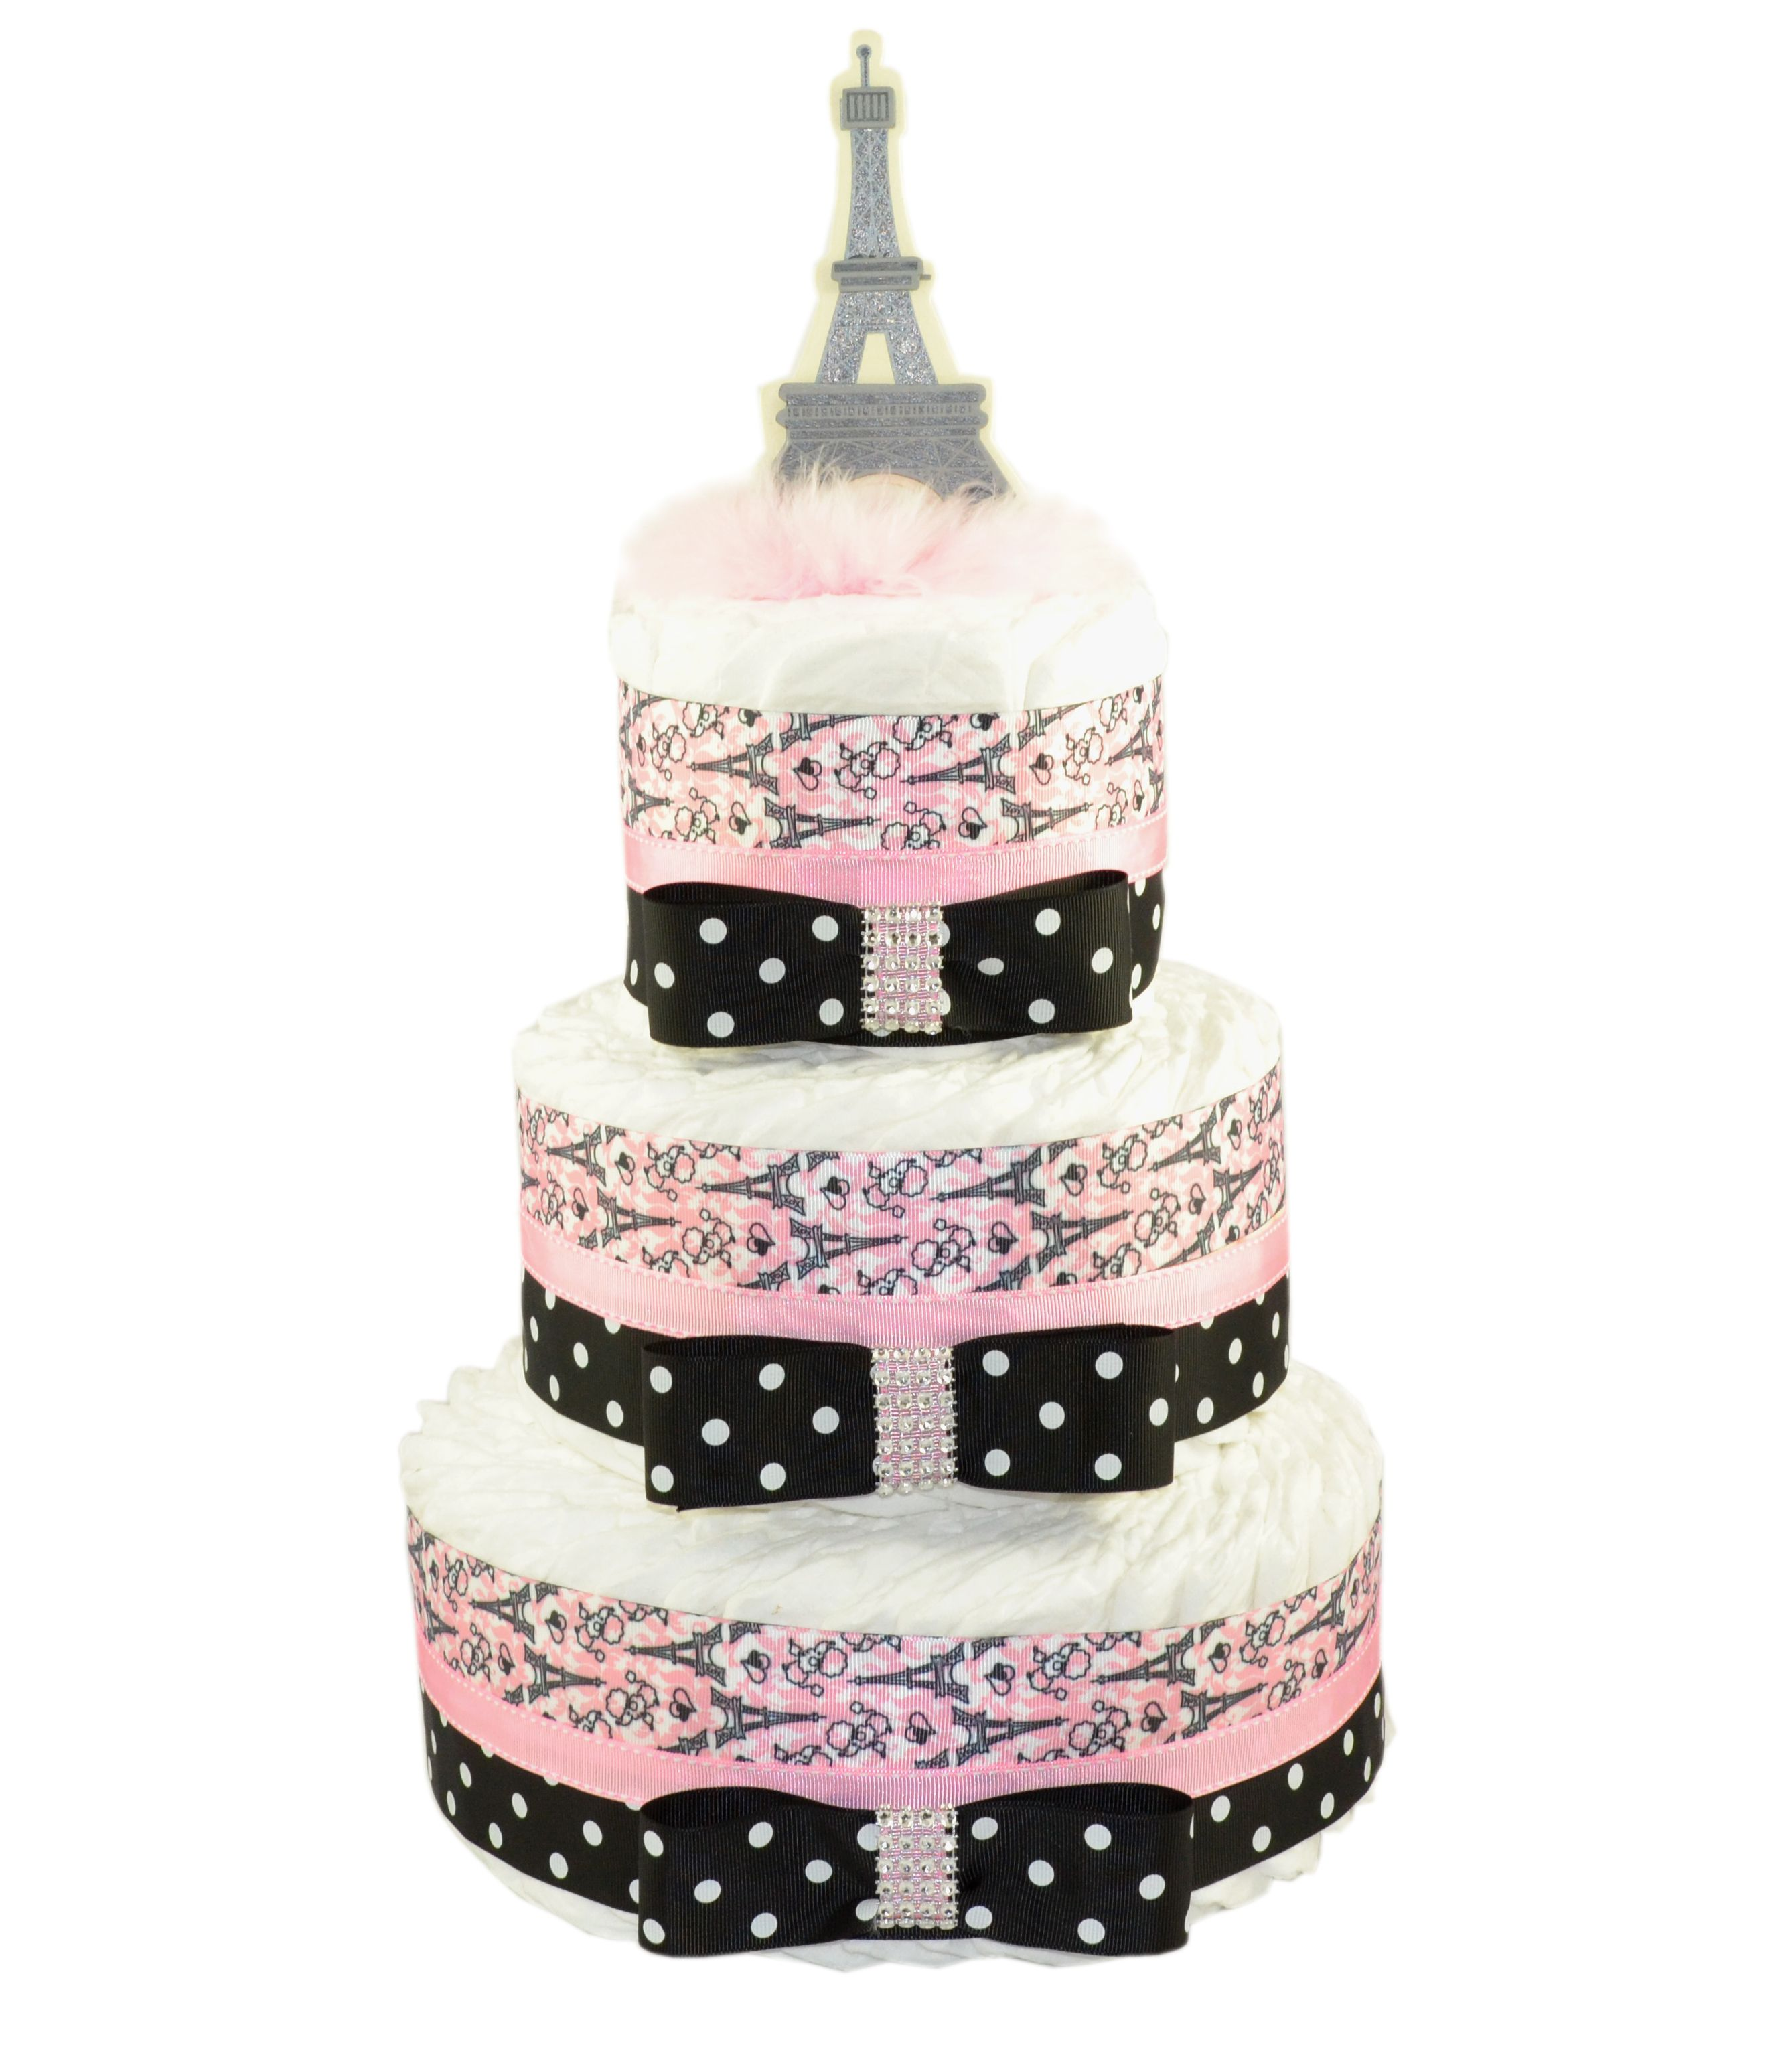 Paris Baby Shower Cake: Paris Eiffel Tower Diaper Cake